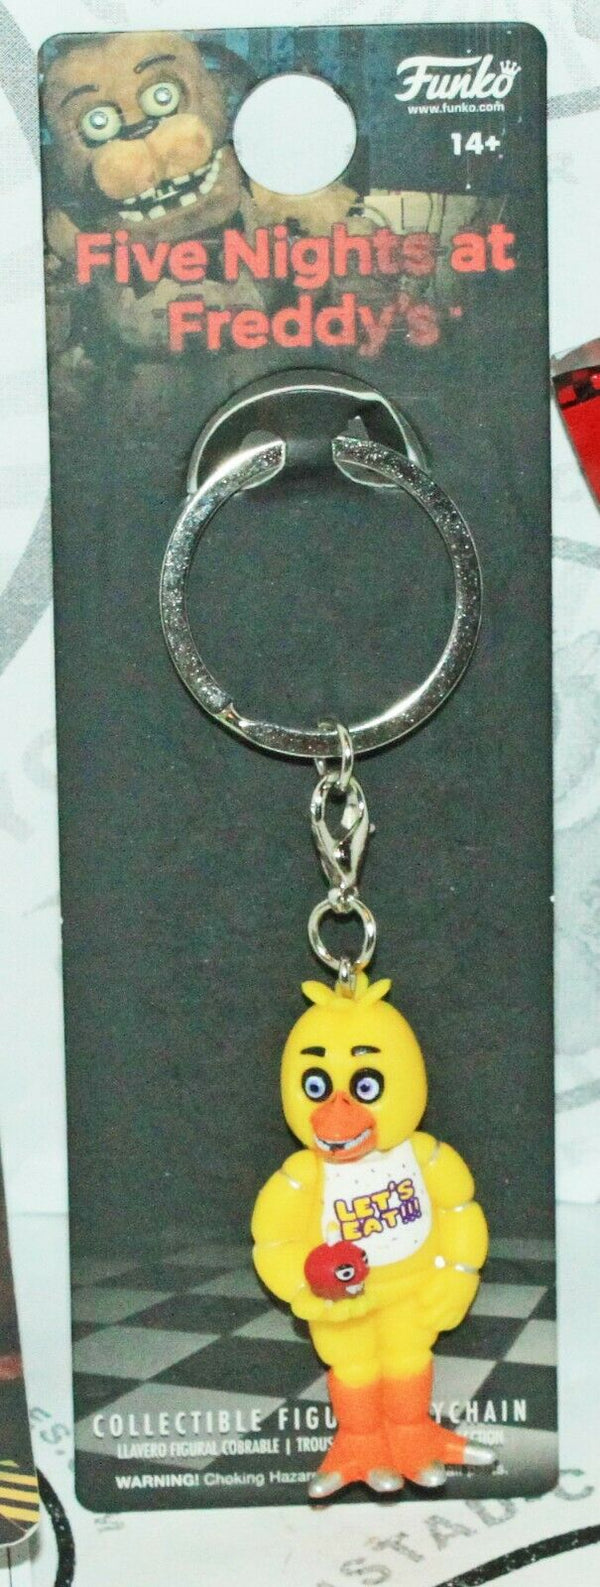 CHICA FNAF FIVE NIGHTS AT FREDDY'S - FUNKO TOY KEYCHAIN 2016 - EZ Monster Deals